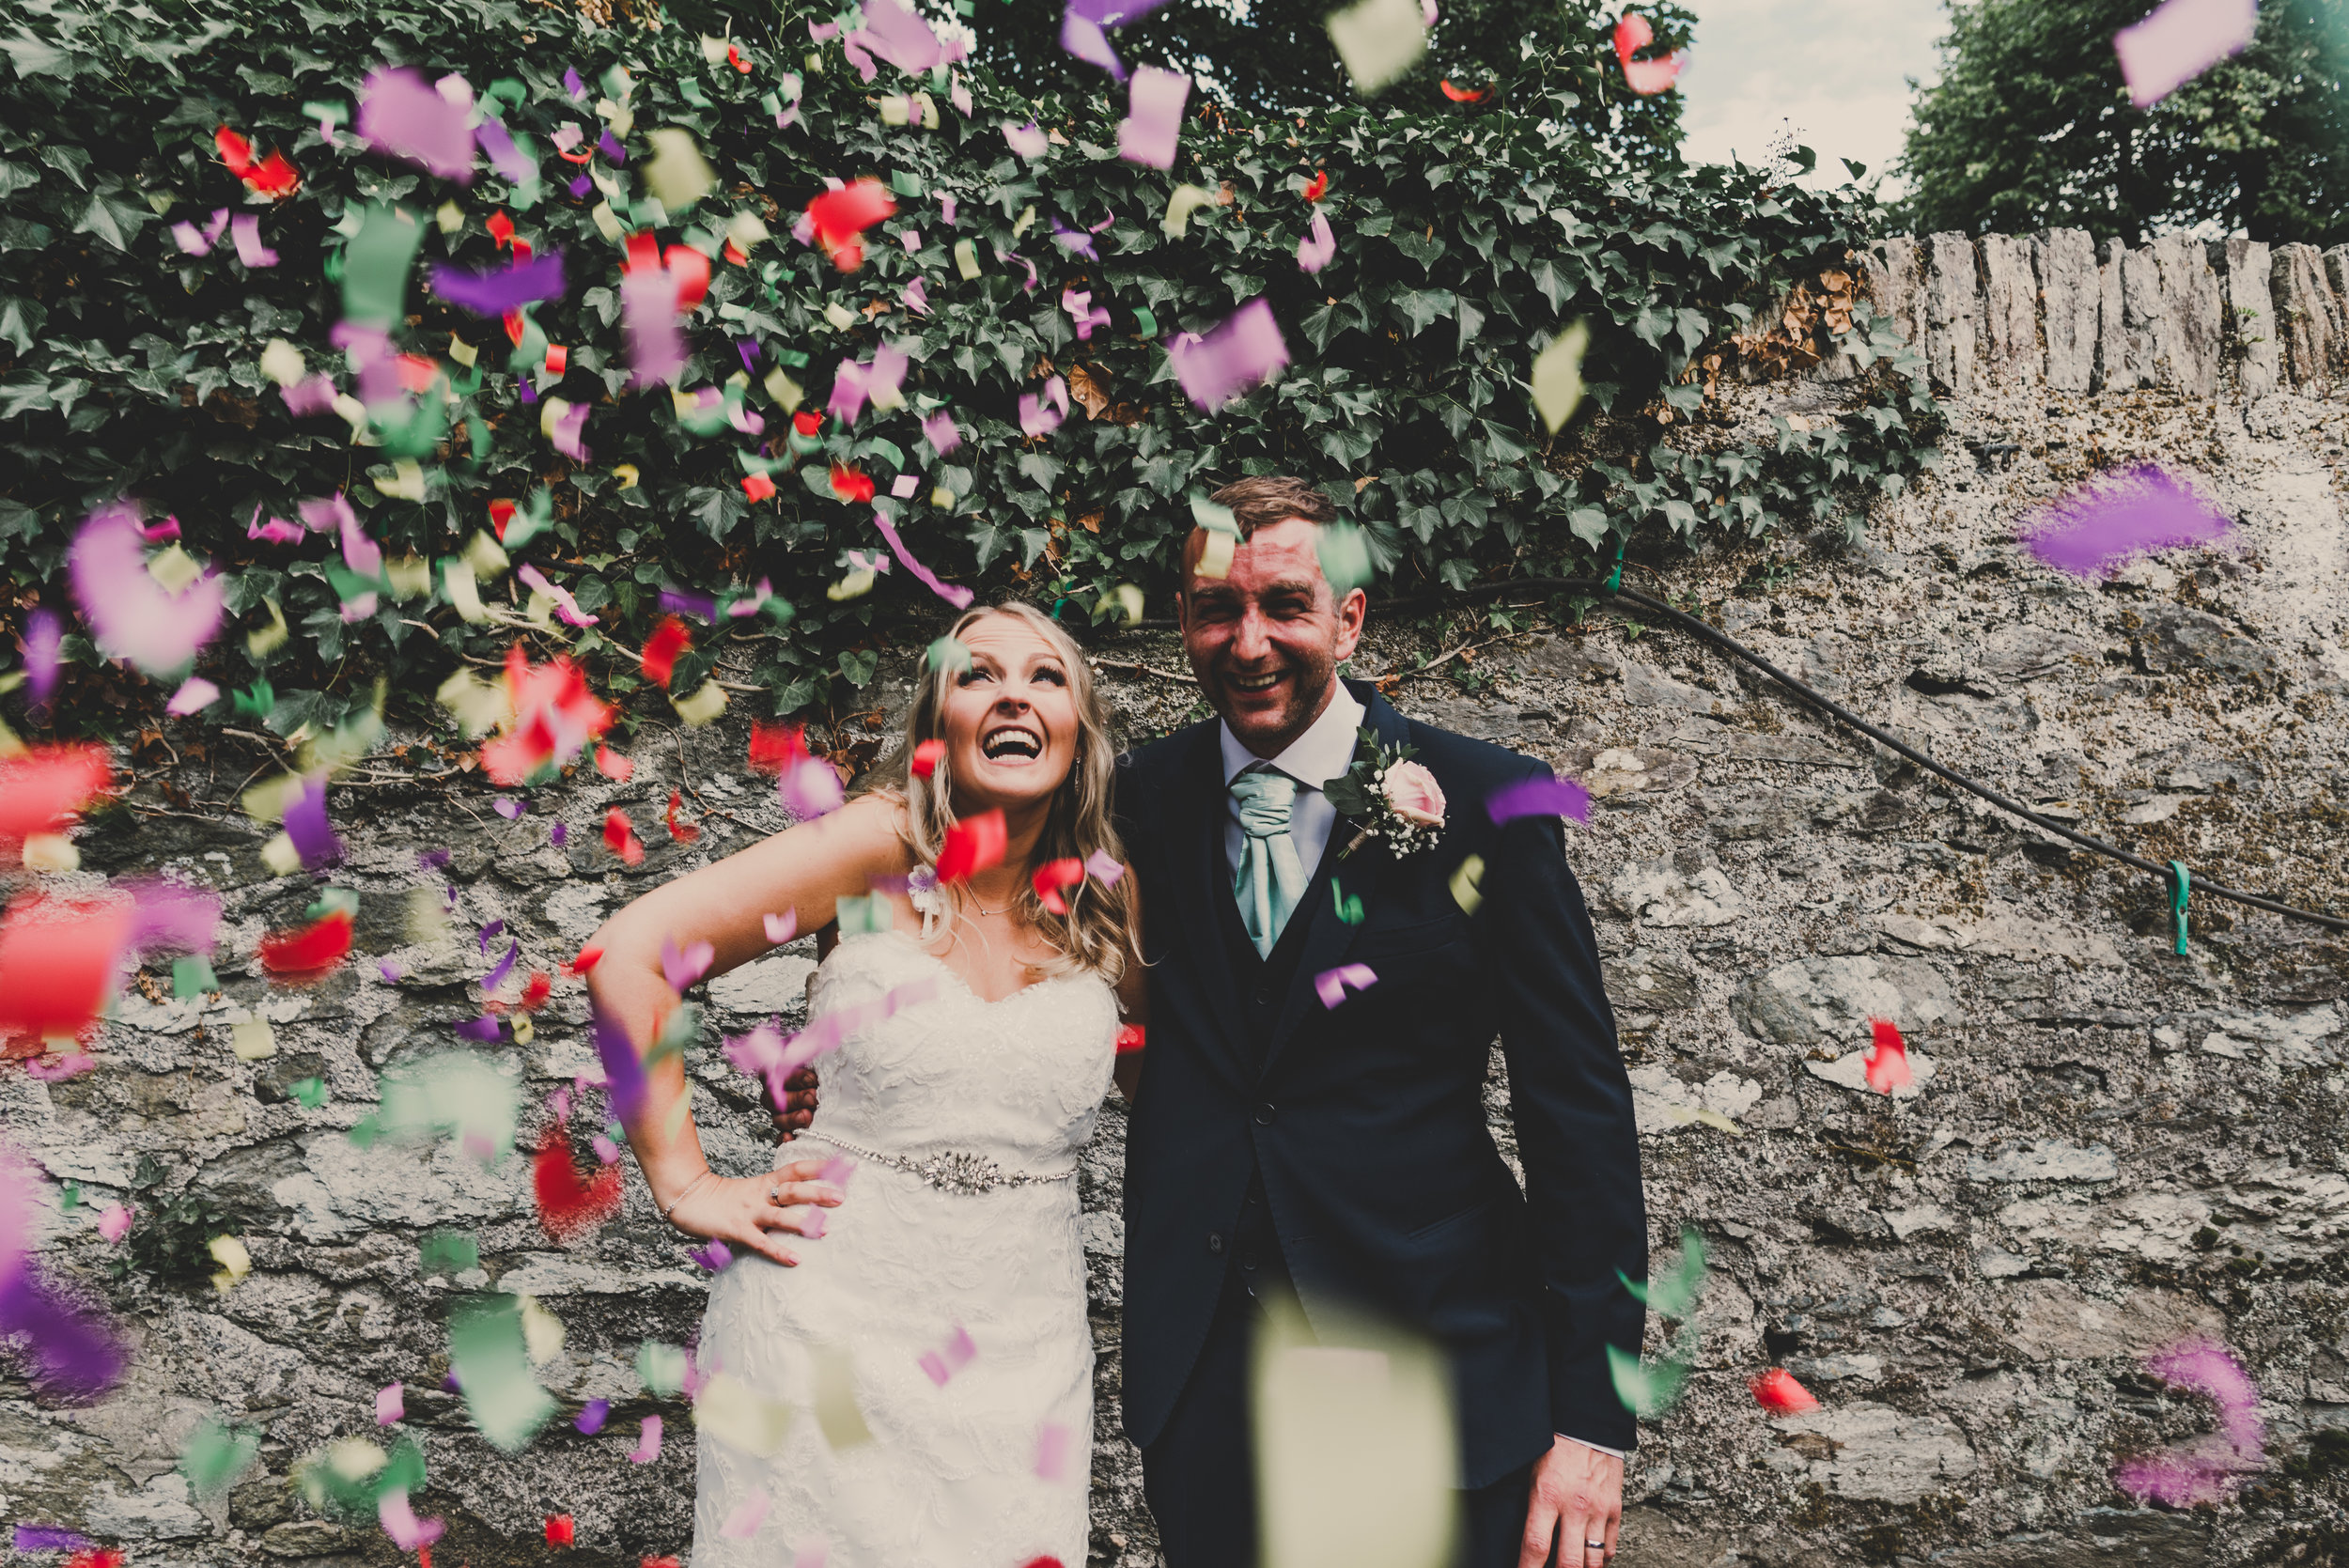 Ellie and Spencer - A Welsh Festival Wedding in Anglesey - I love all the photos SOOOO much! Every photo shows pure joy – thank you. xxx